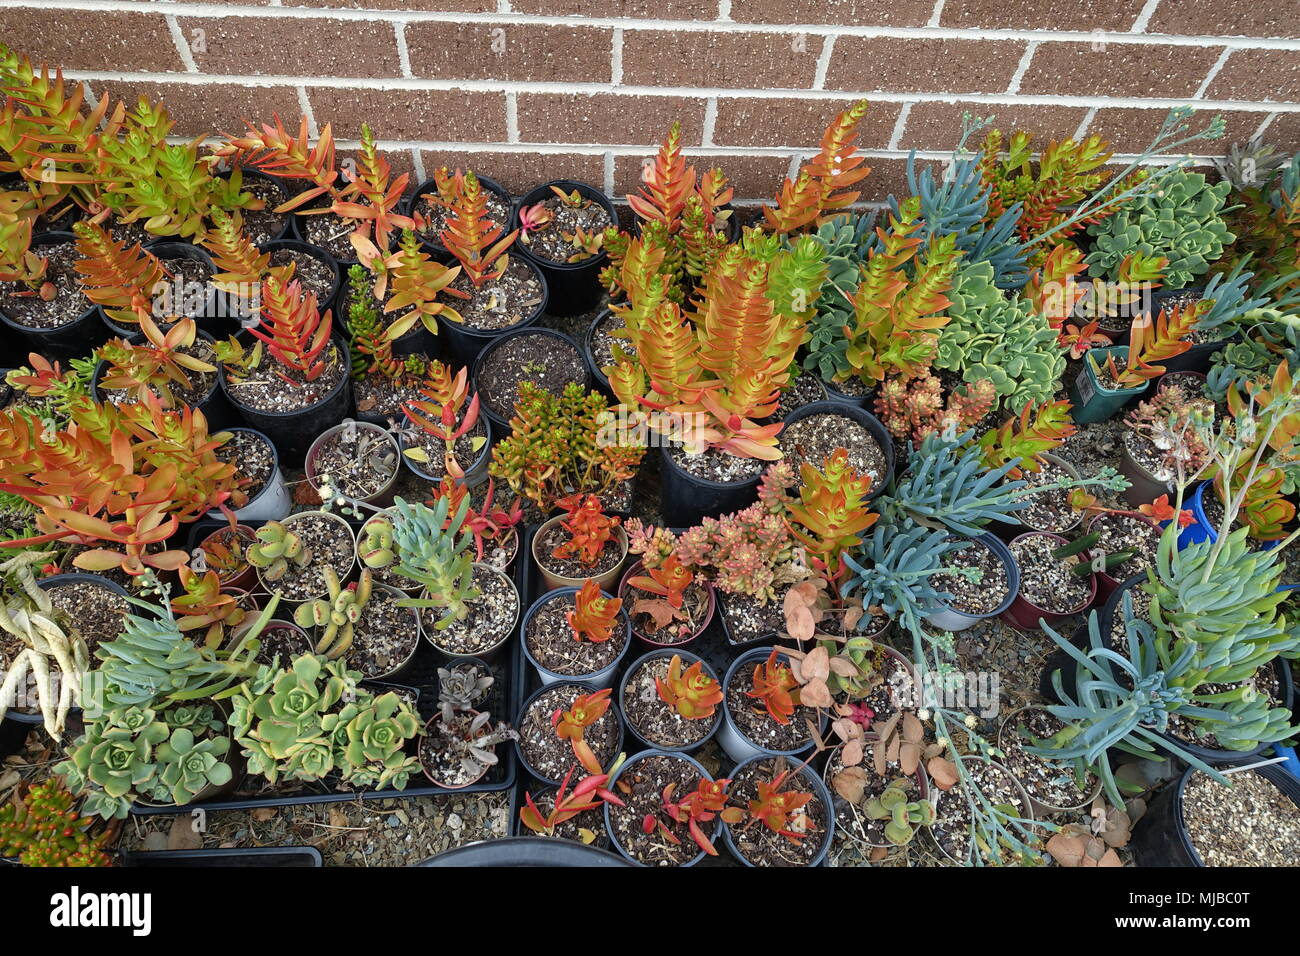 Mixed variety of succulent cuttings - Stock Image